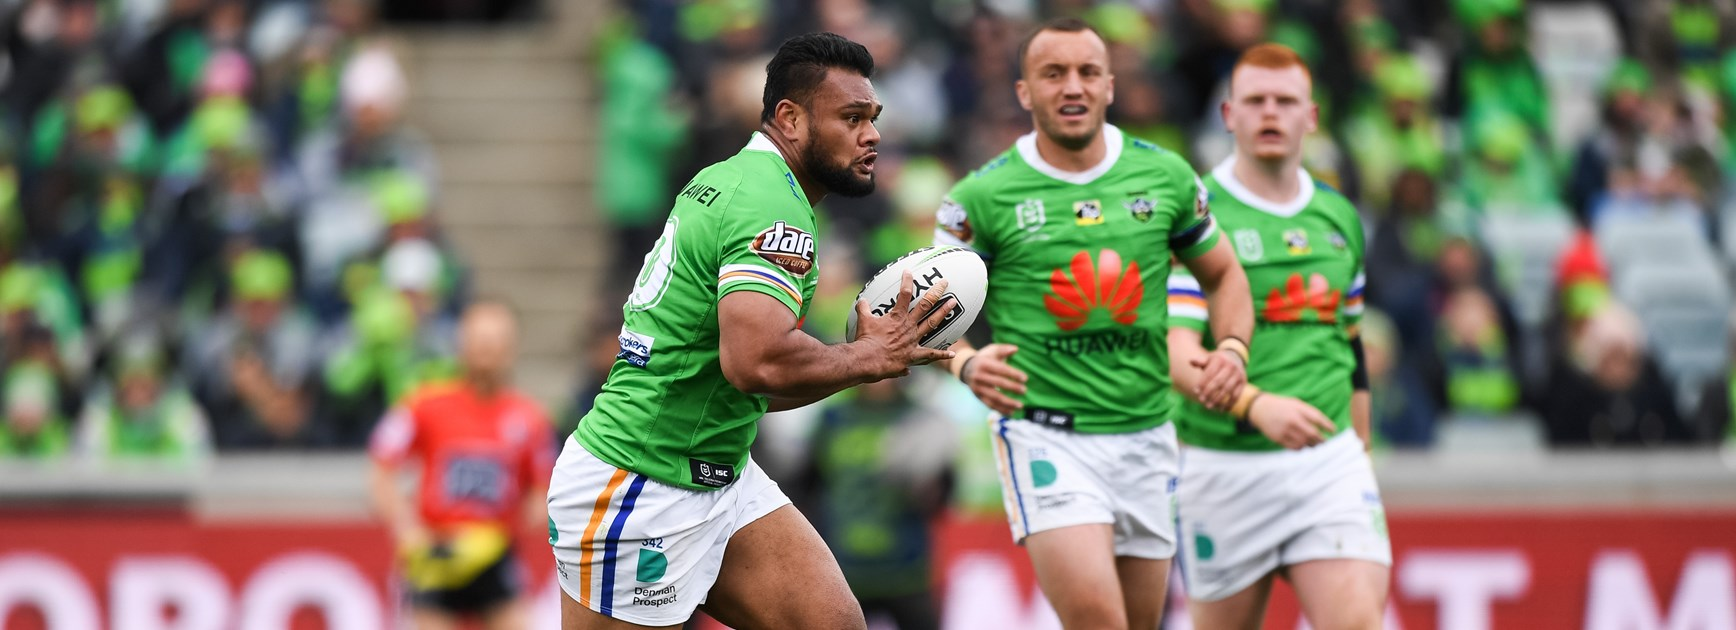 Hand of mateship reaches out to Lui when he needs it most